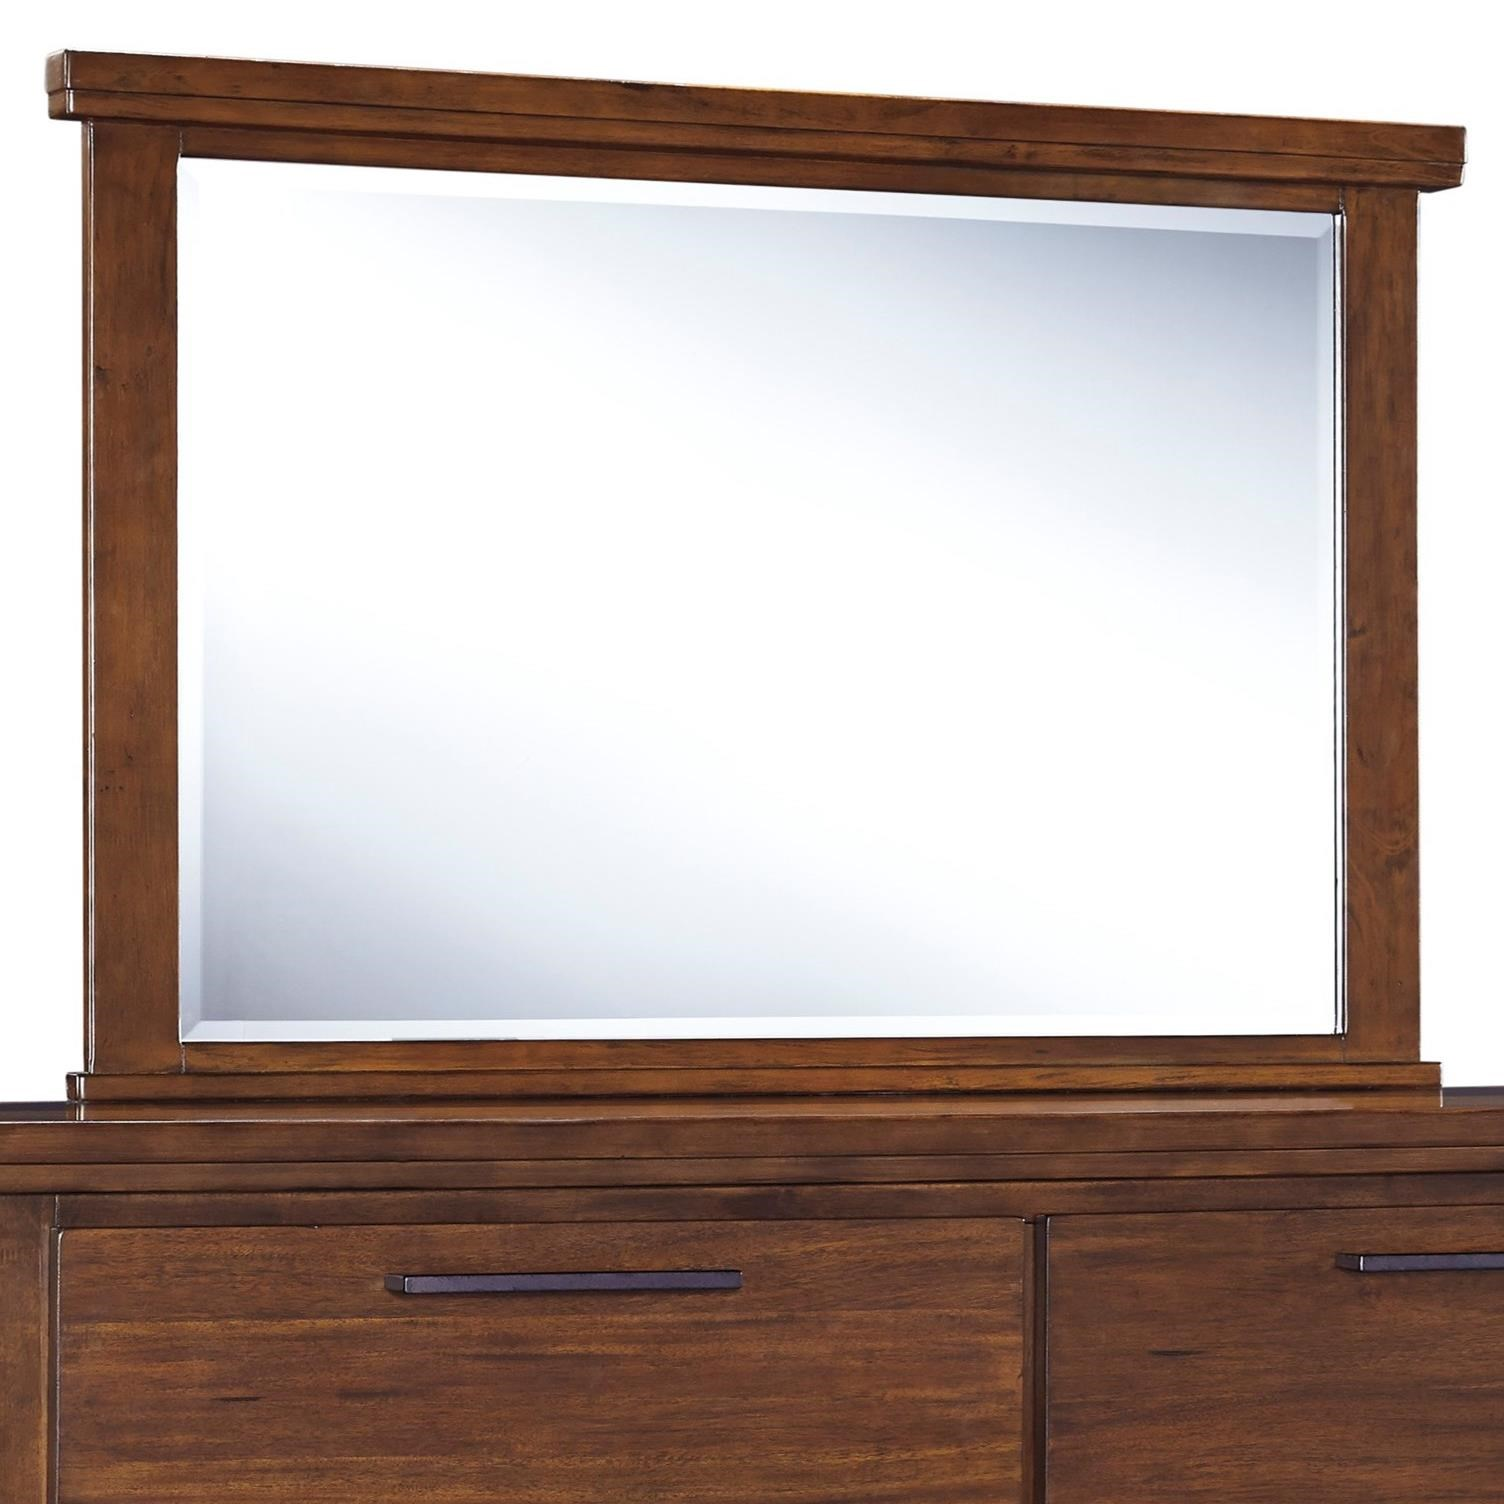 Signature design by ashley ralene bedroom mirror olinde 39 s furniture dresser mirrors for Ashley furniture ralene bedroom set